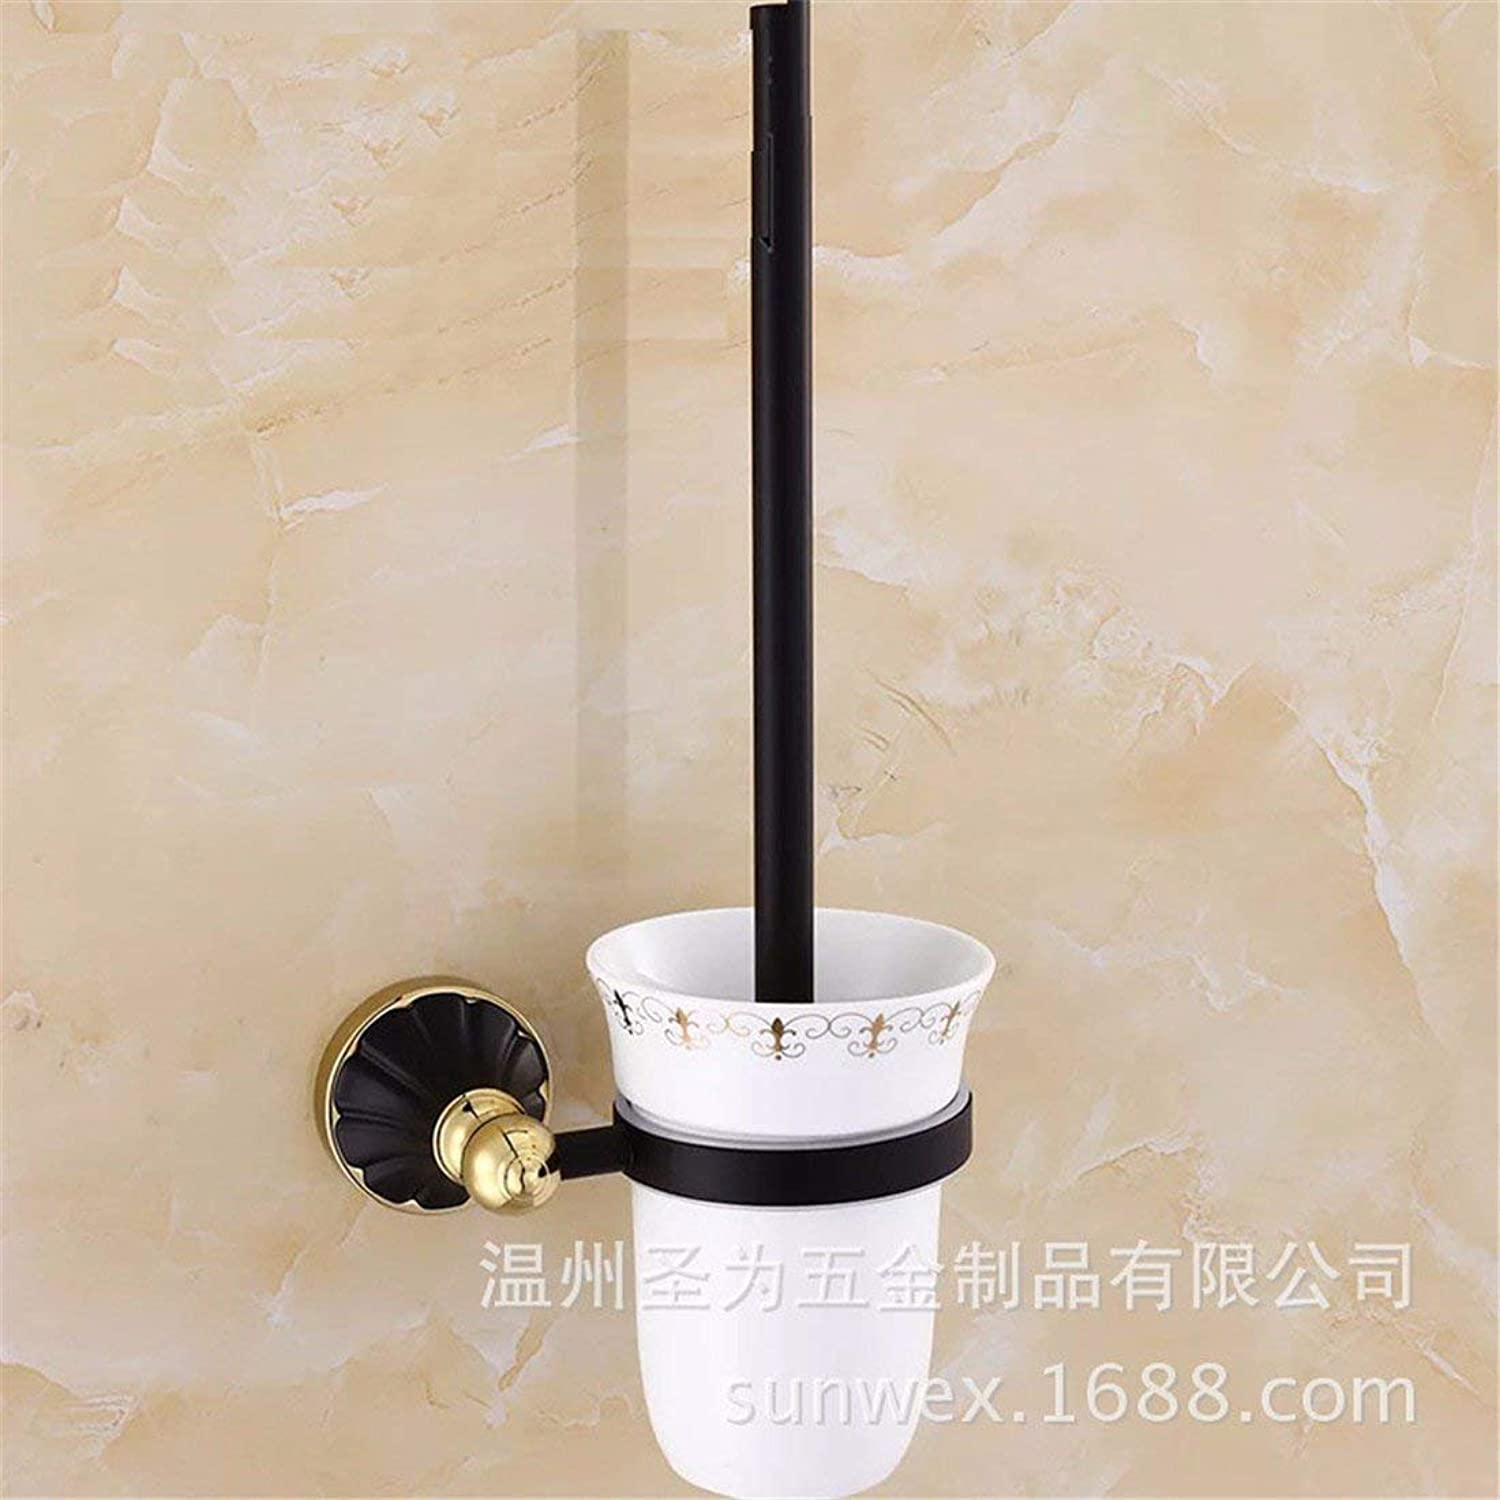 European Style Black gold of Base Petals Accessories Set of Price of The Ring of Dry-Towels,Toilet Brush